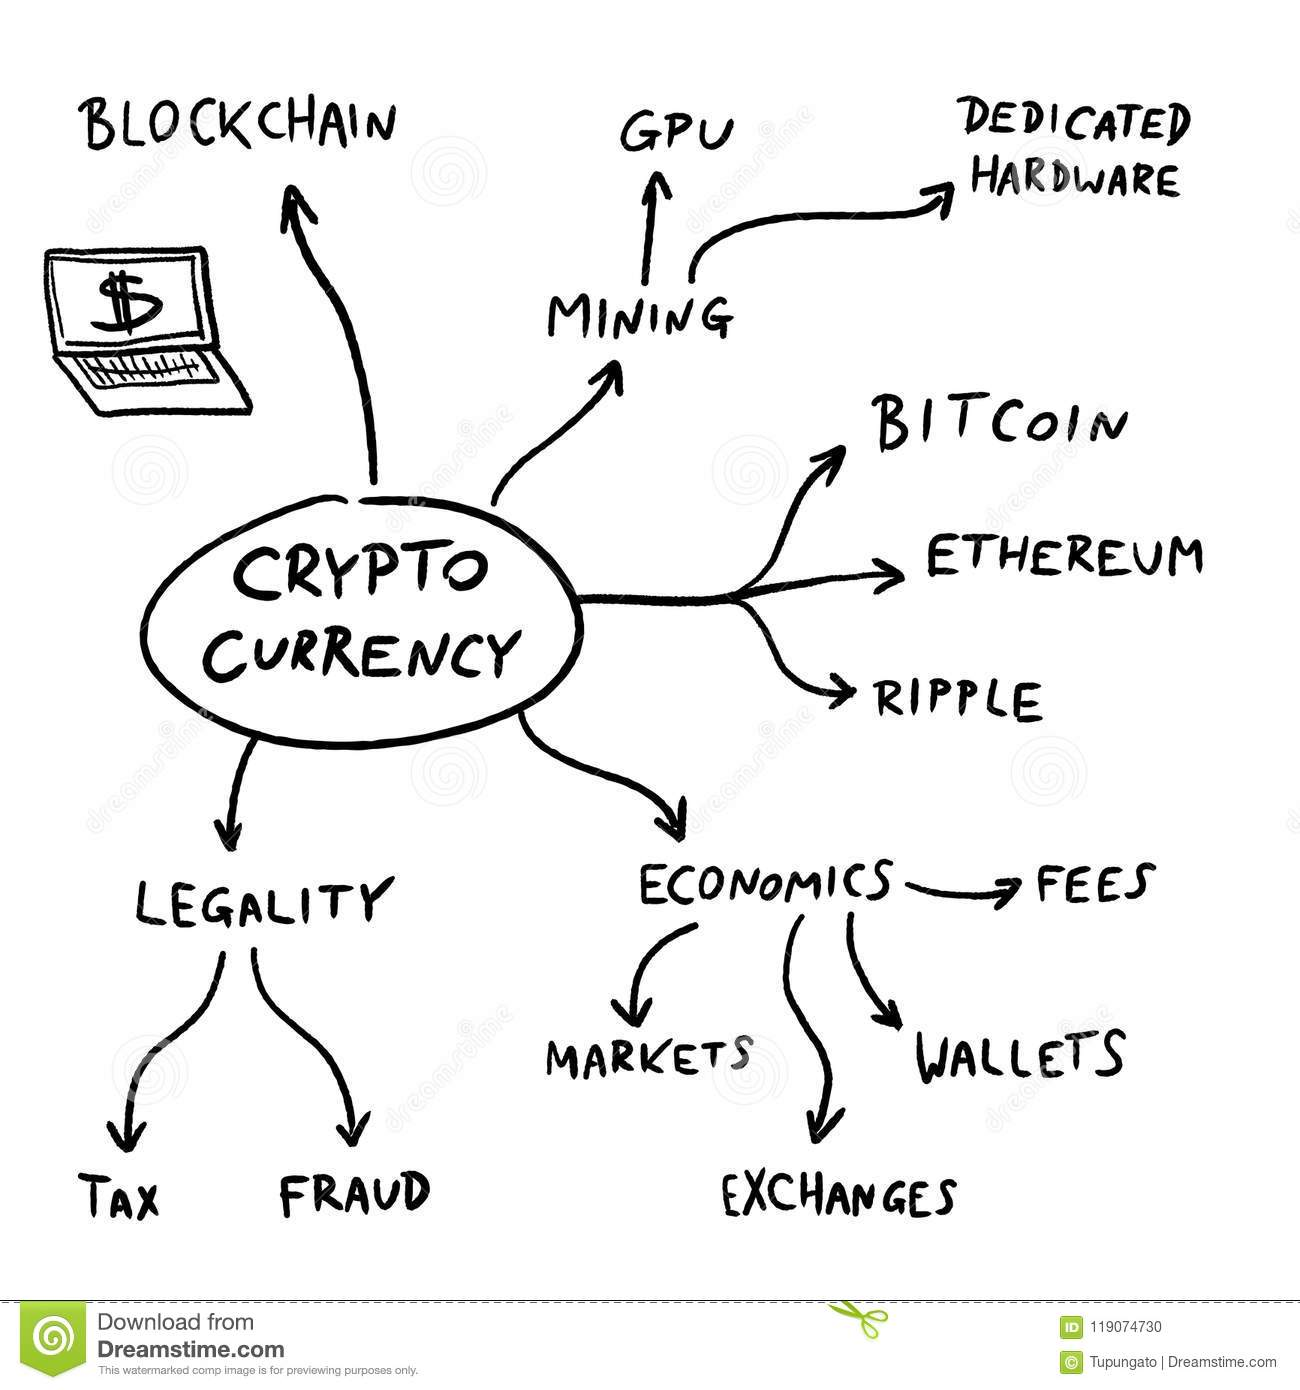 Crypto currency mind map stock vector. Illustration of